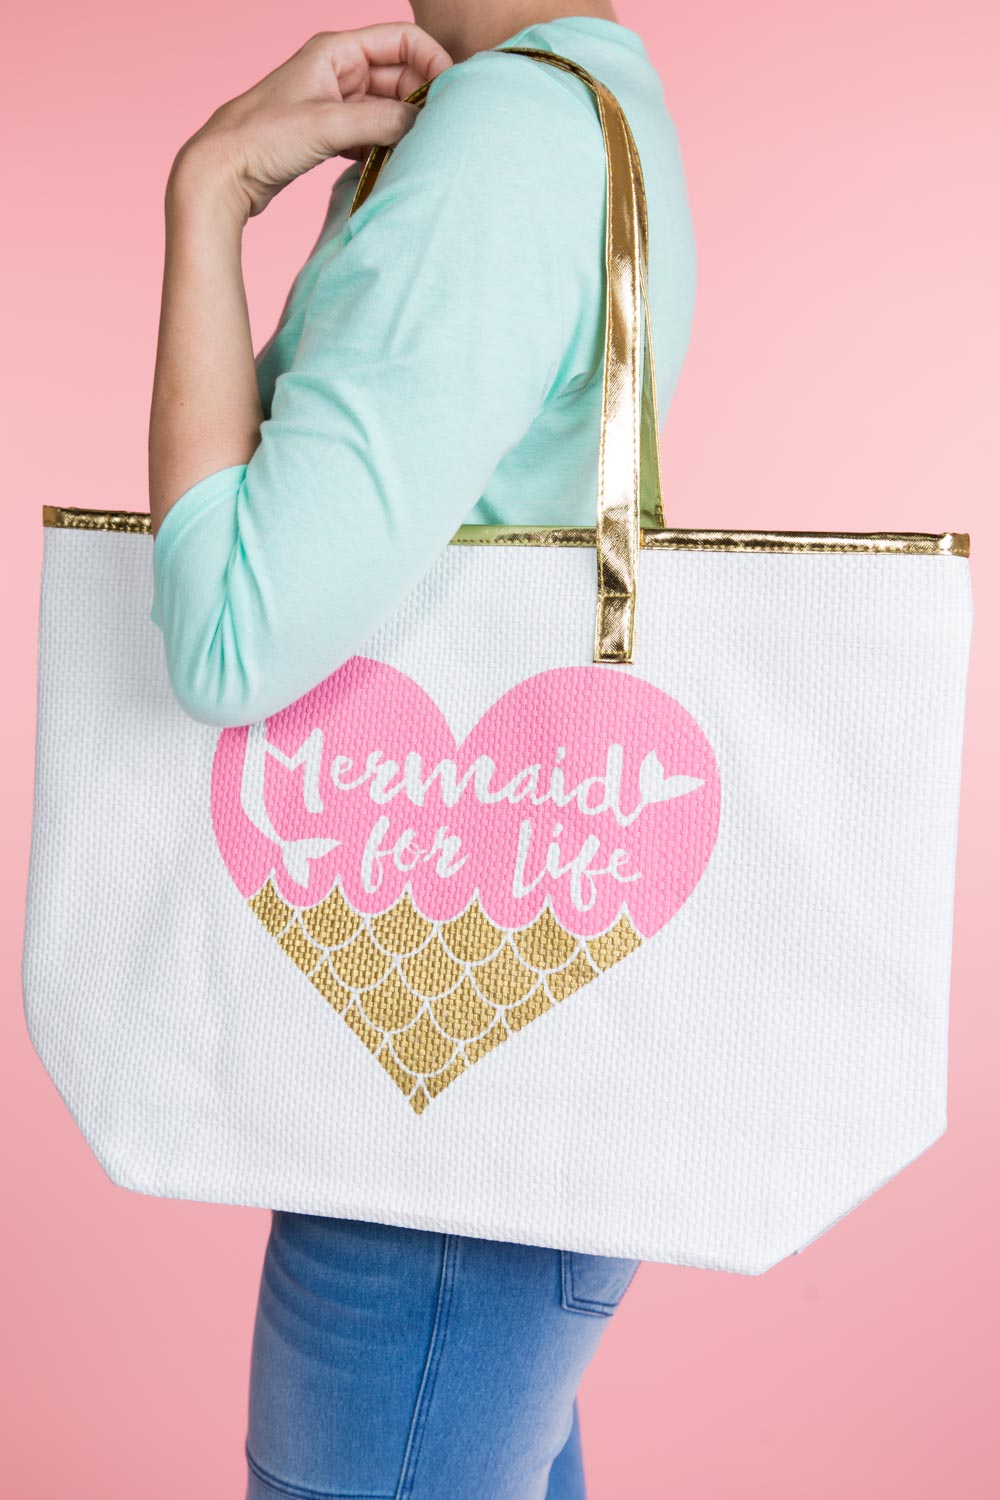 Type 1 Mermaid It For You Tote